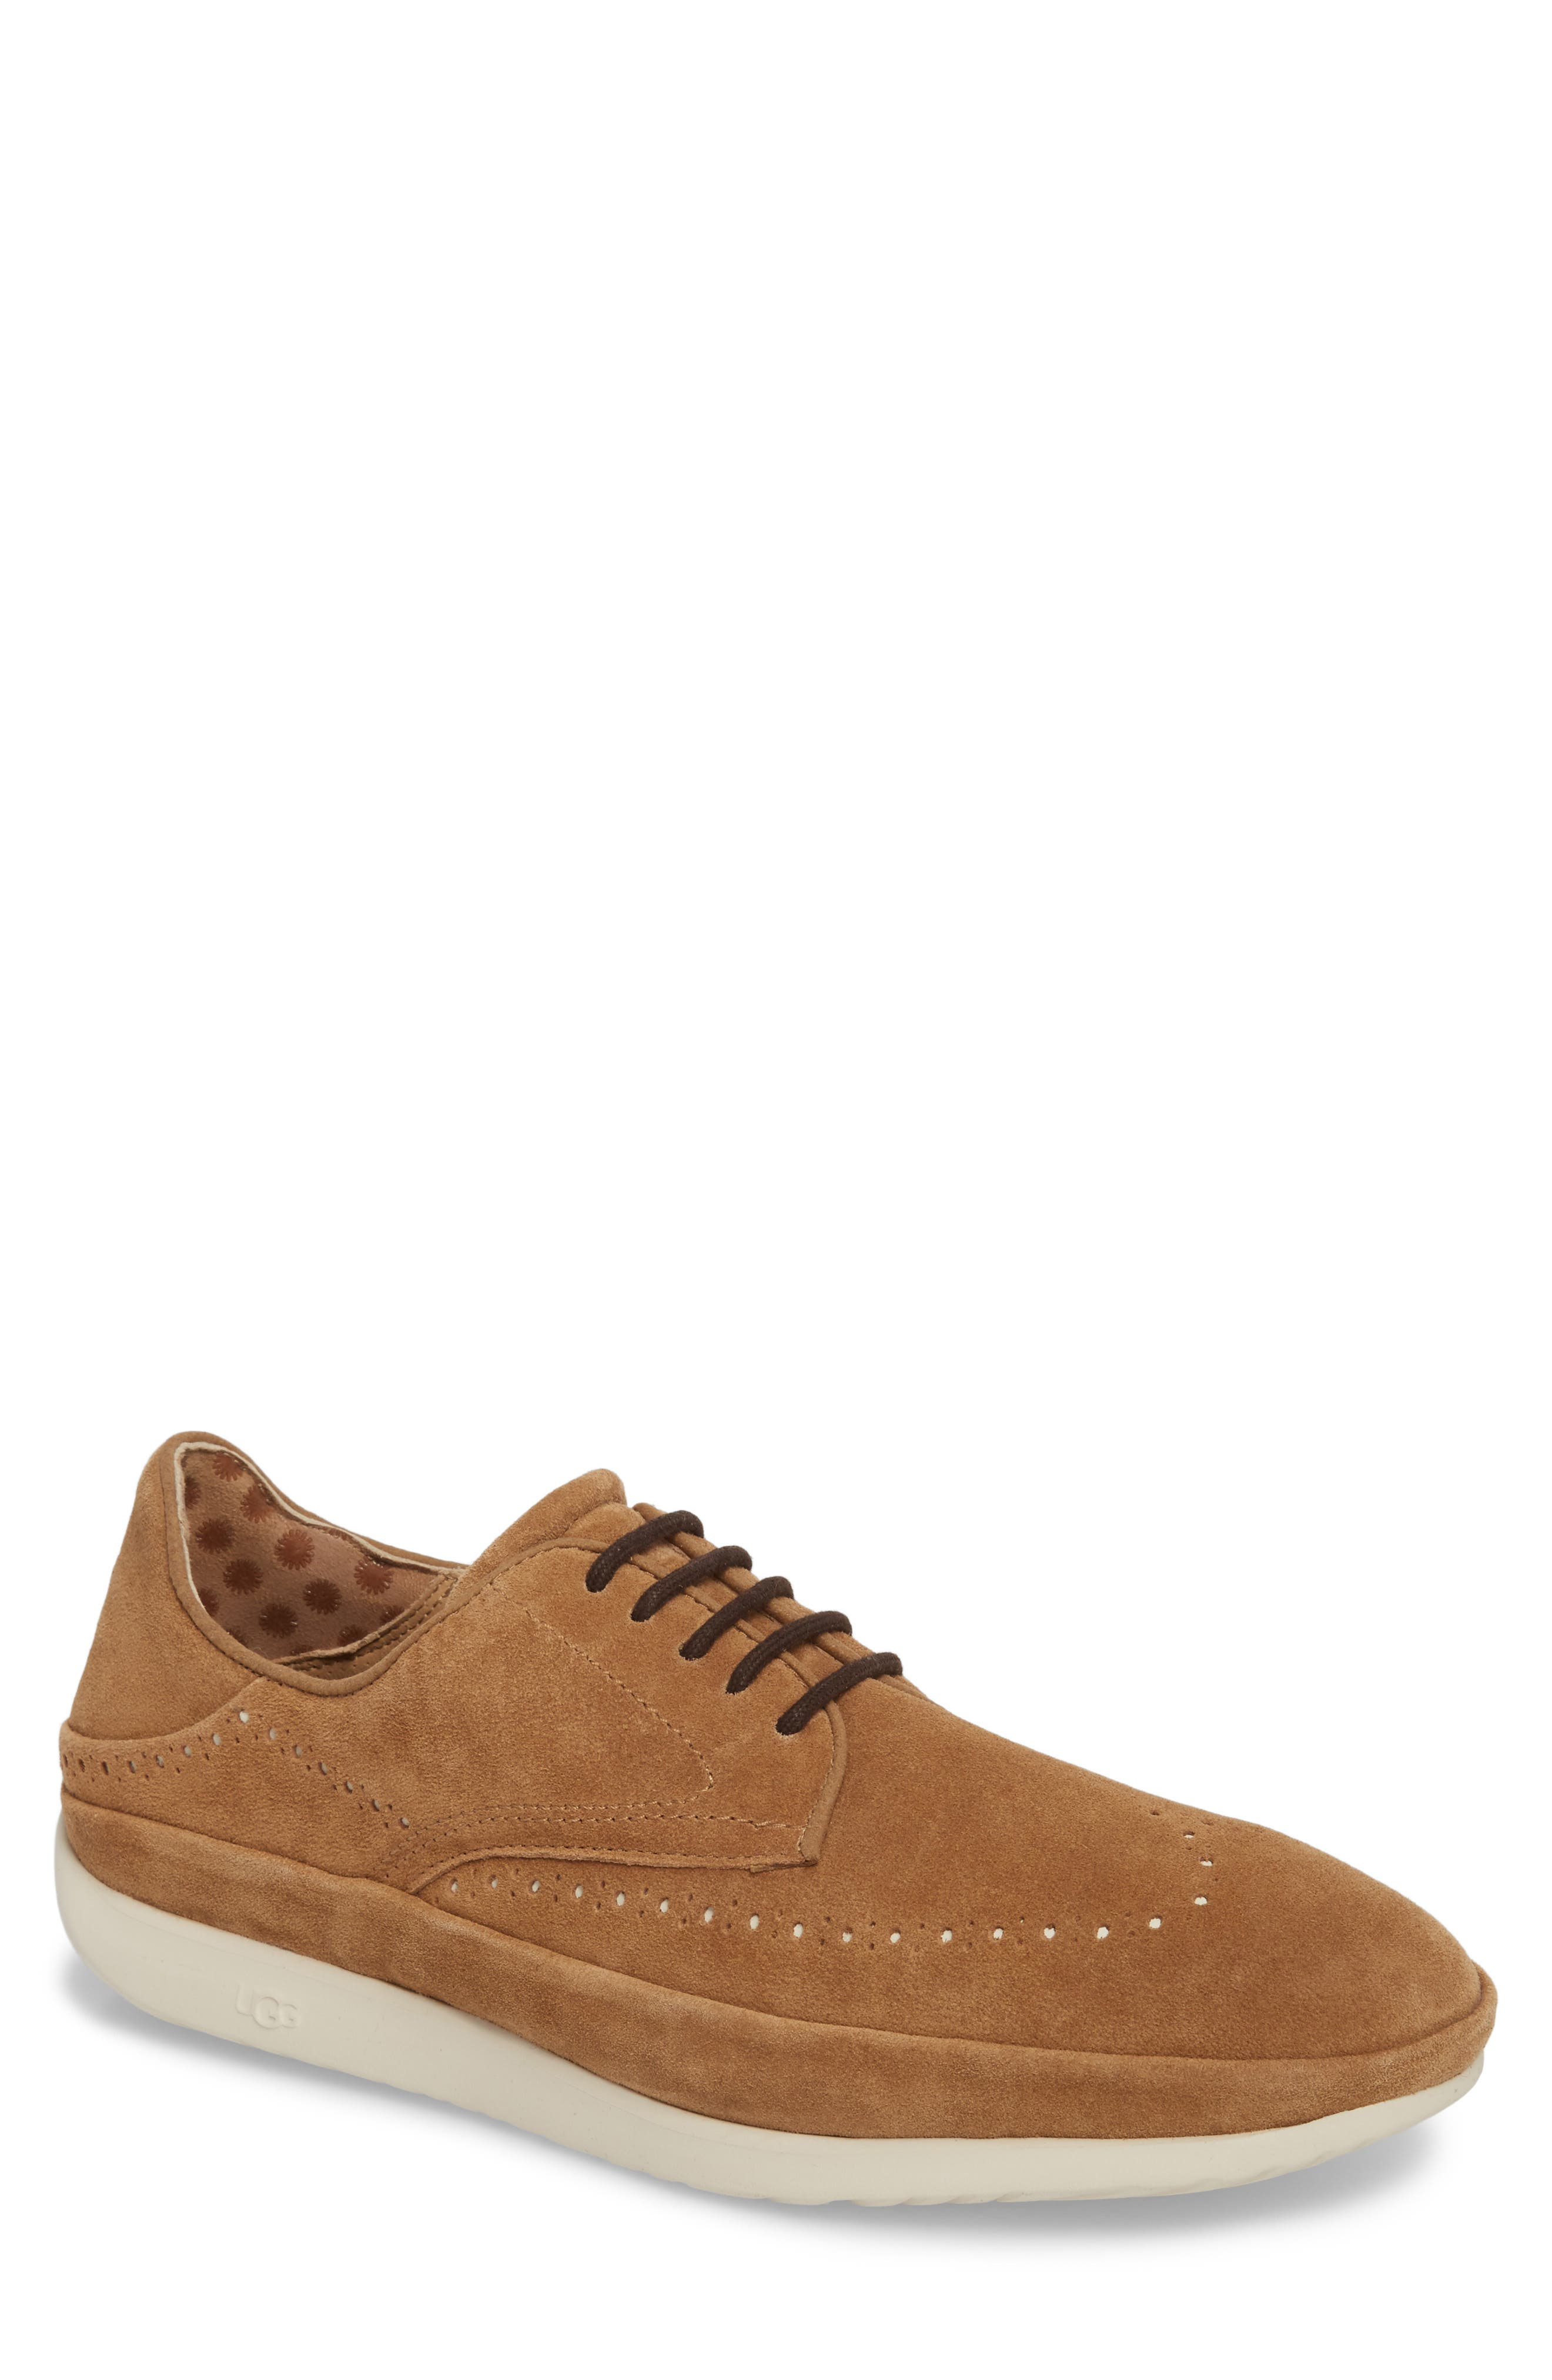 Cali Collapsible Wingtip Derby,                         Main,                         color, CHESTNUT LEATHER